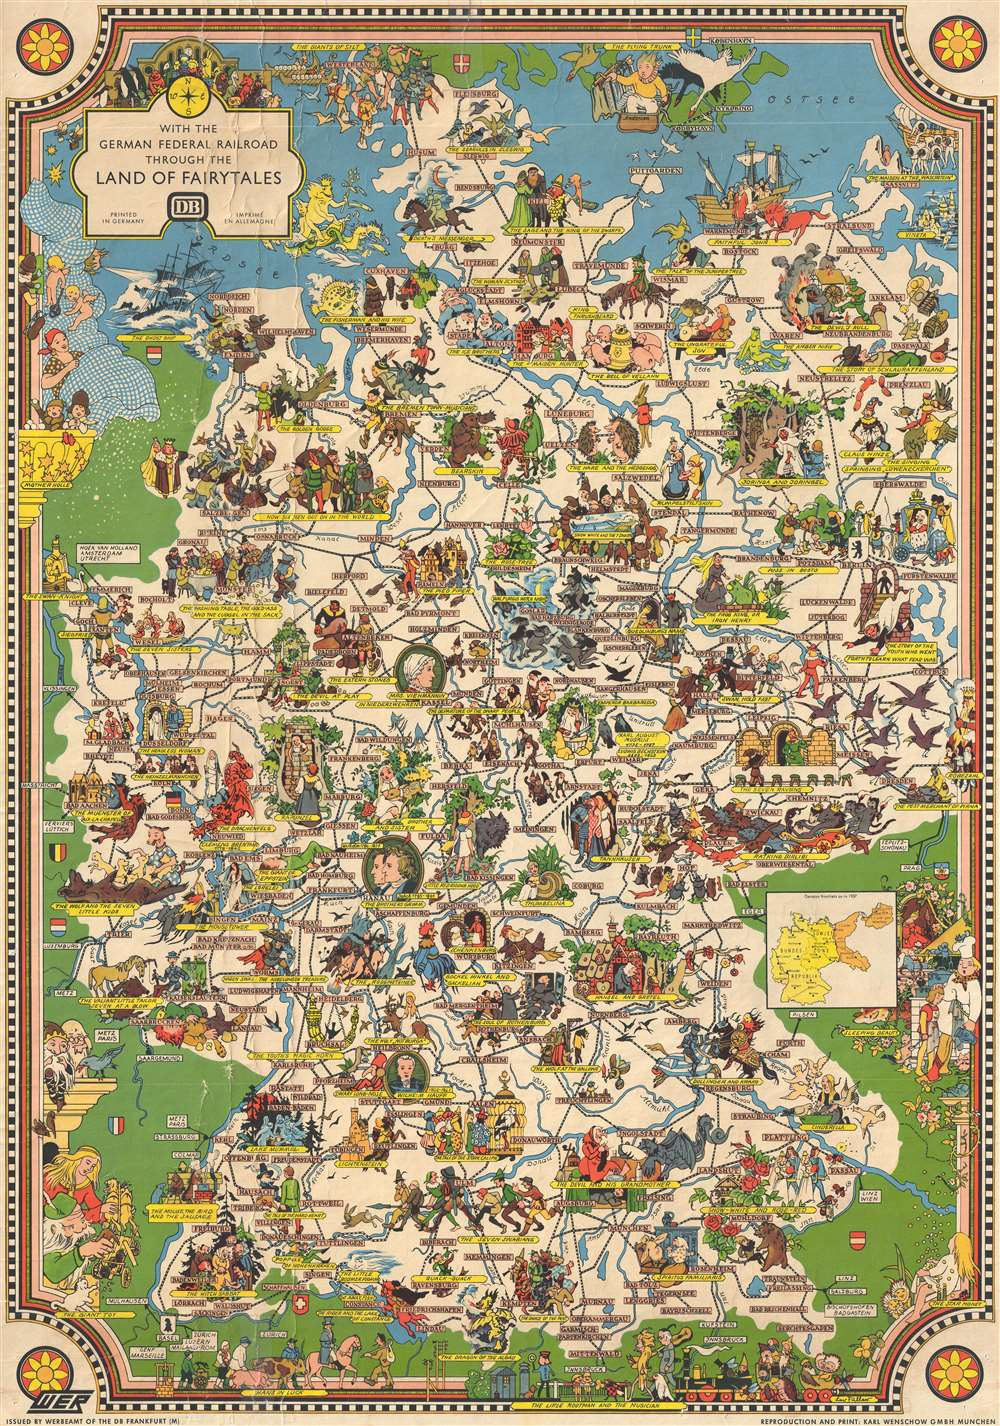 1960 Faller Pictorial Map of Germany as Fairytale Land